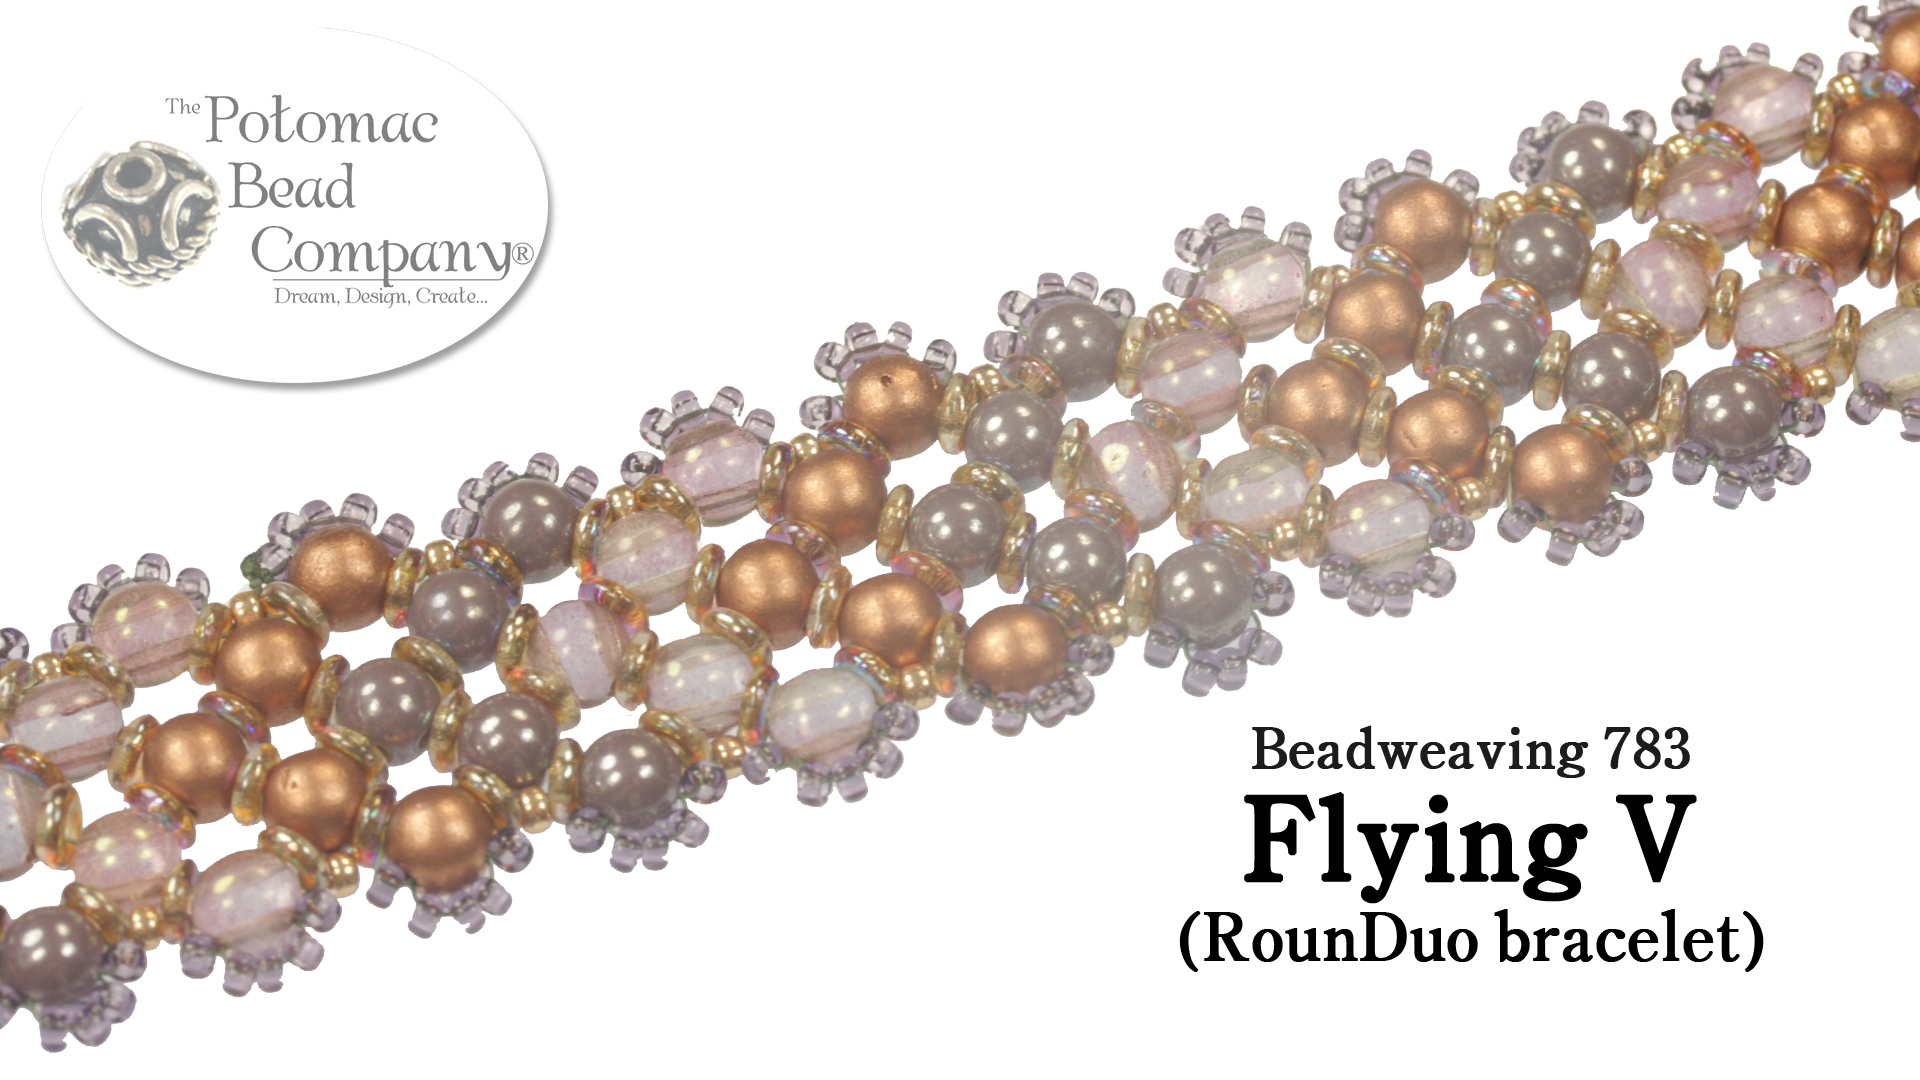 How to Bead / Videos Sorted by Beads / RounDuo® & RounDuo® Mini Bead Videos / Flying V RounDuo Bracelet